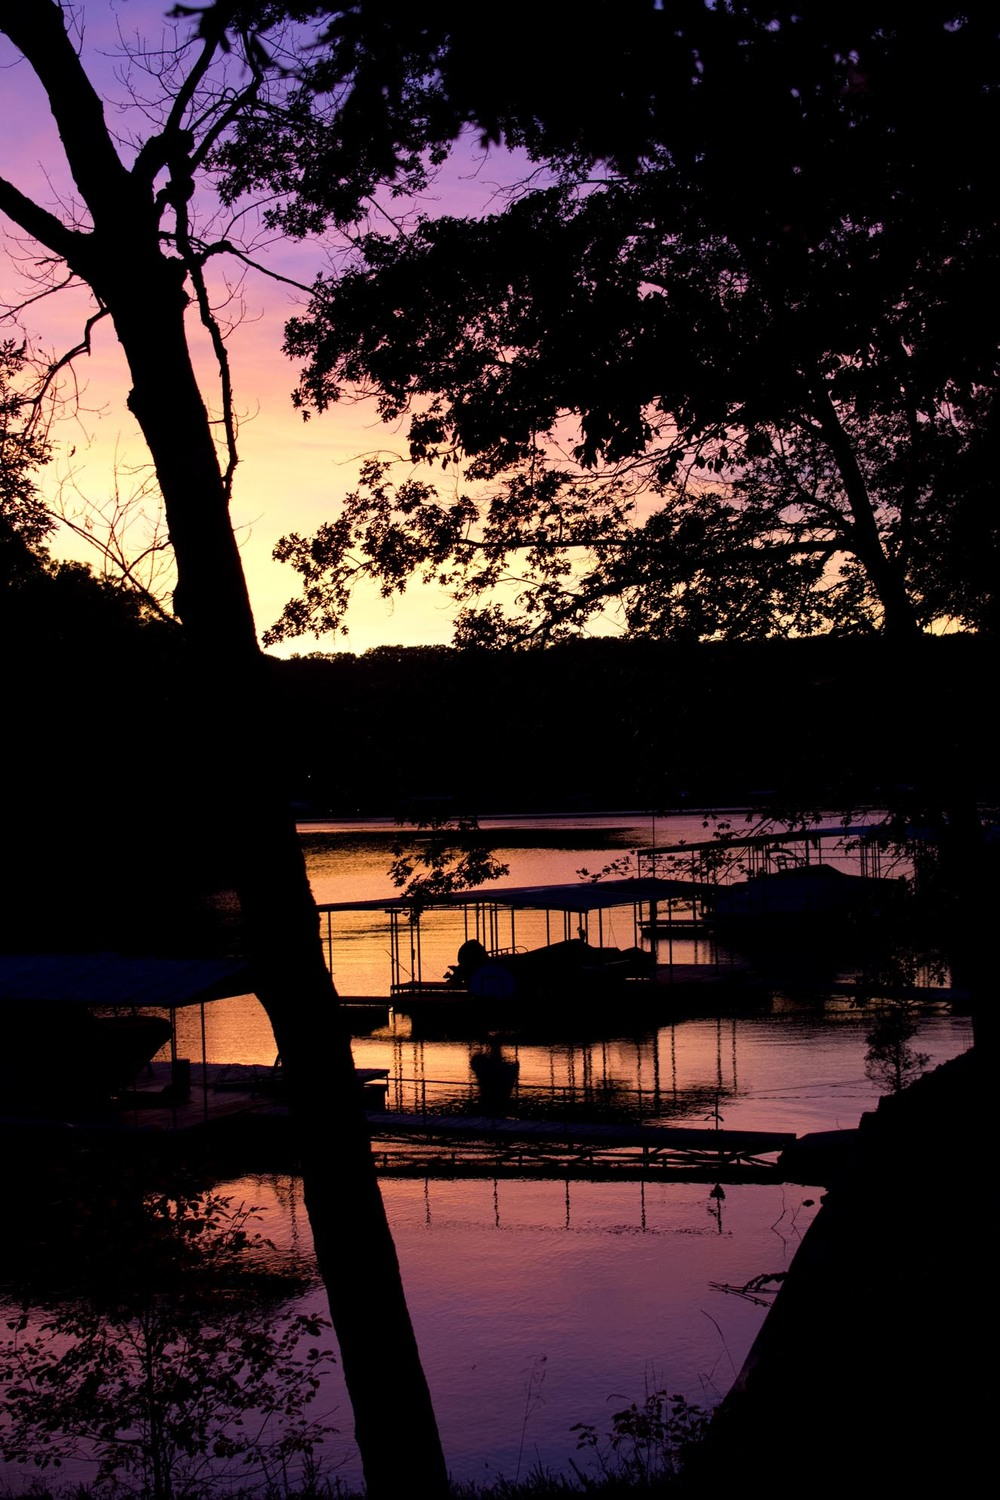 sunset1_lakehouse_10-10-15.jpg